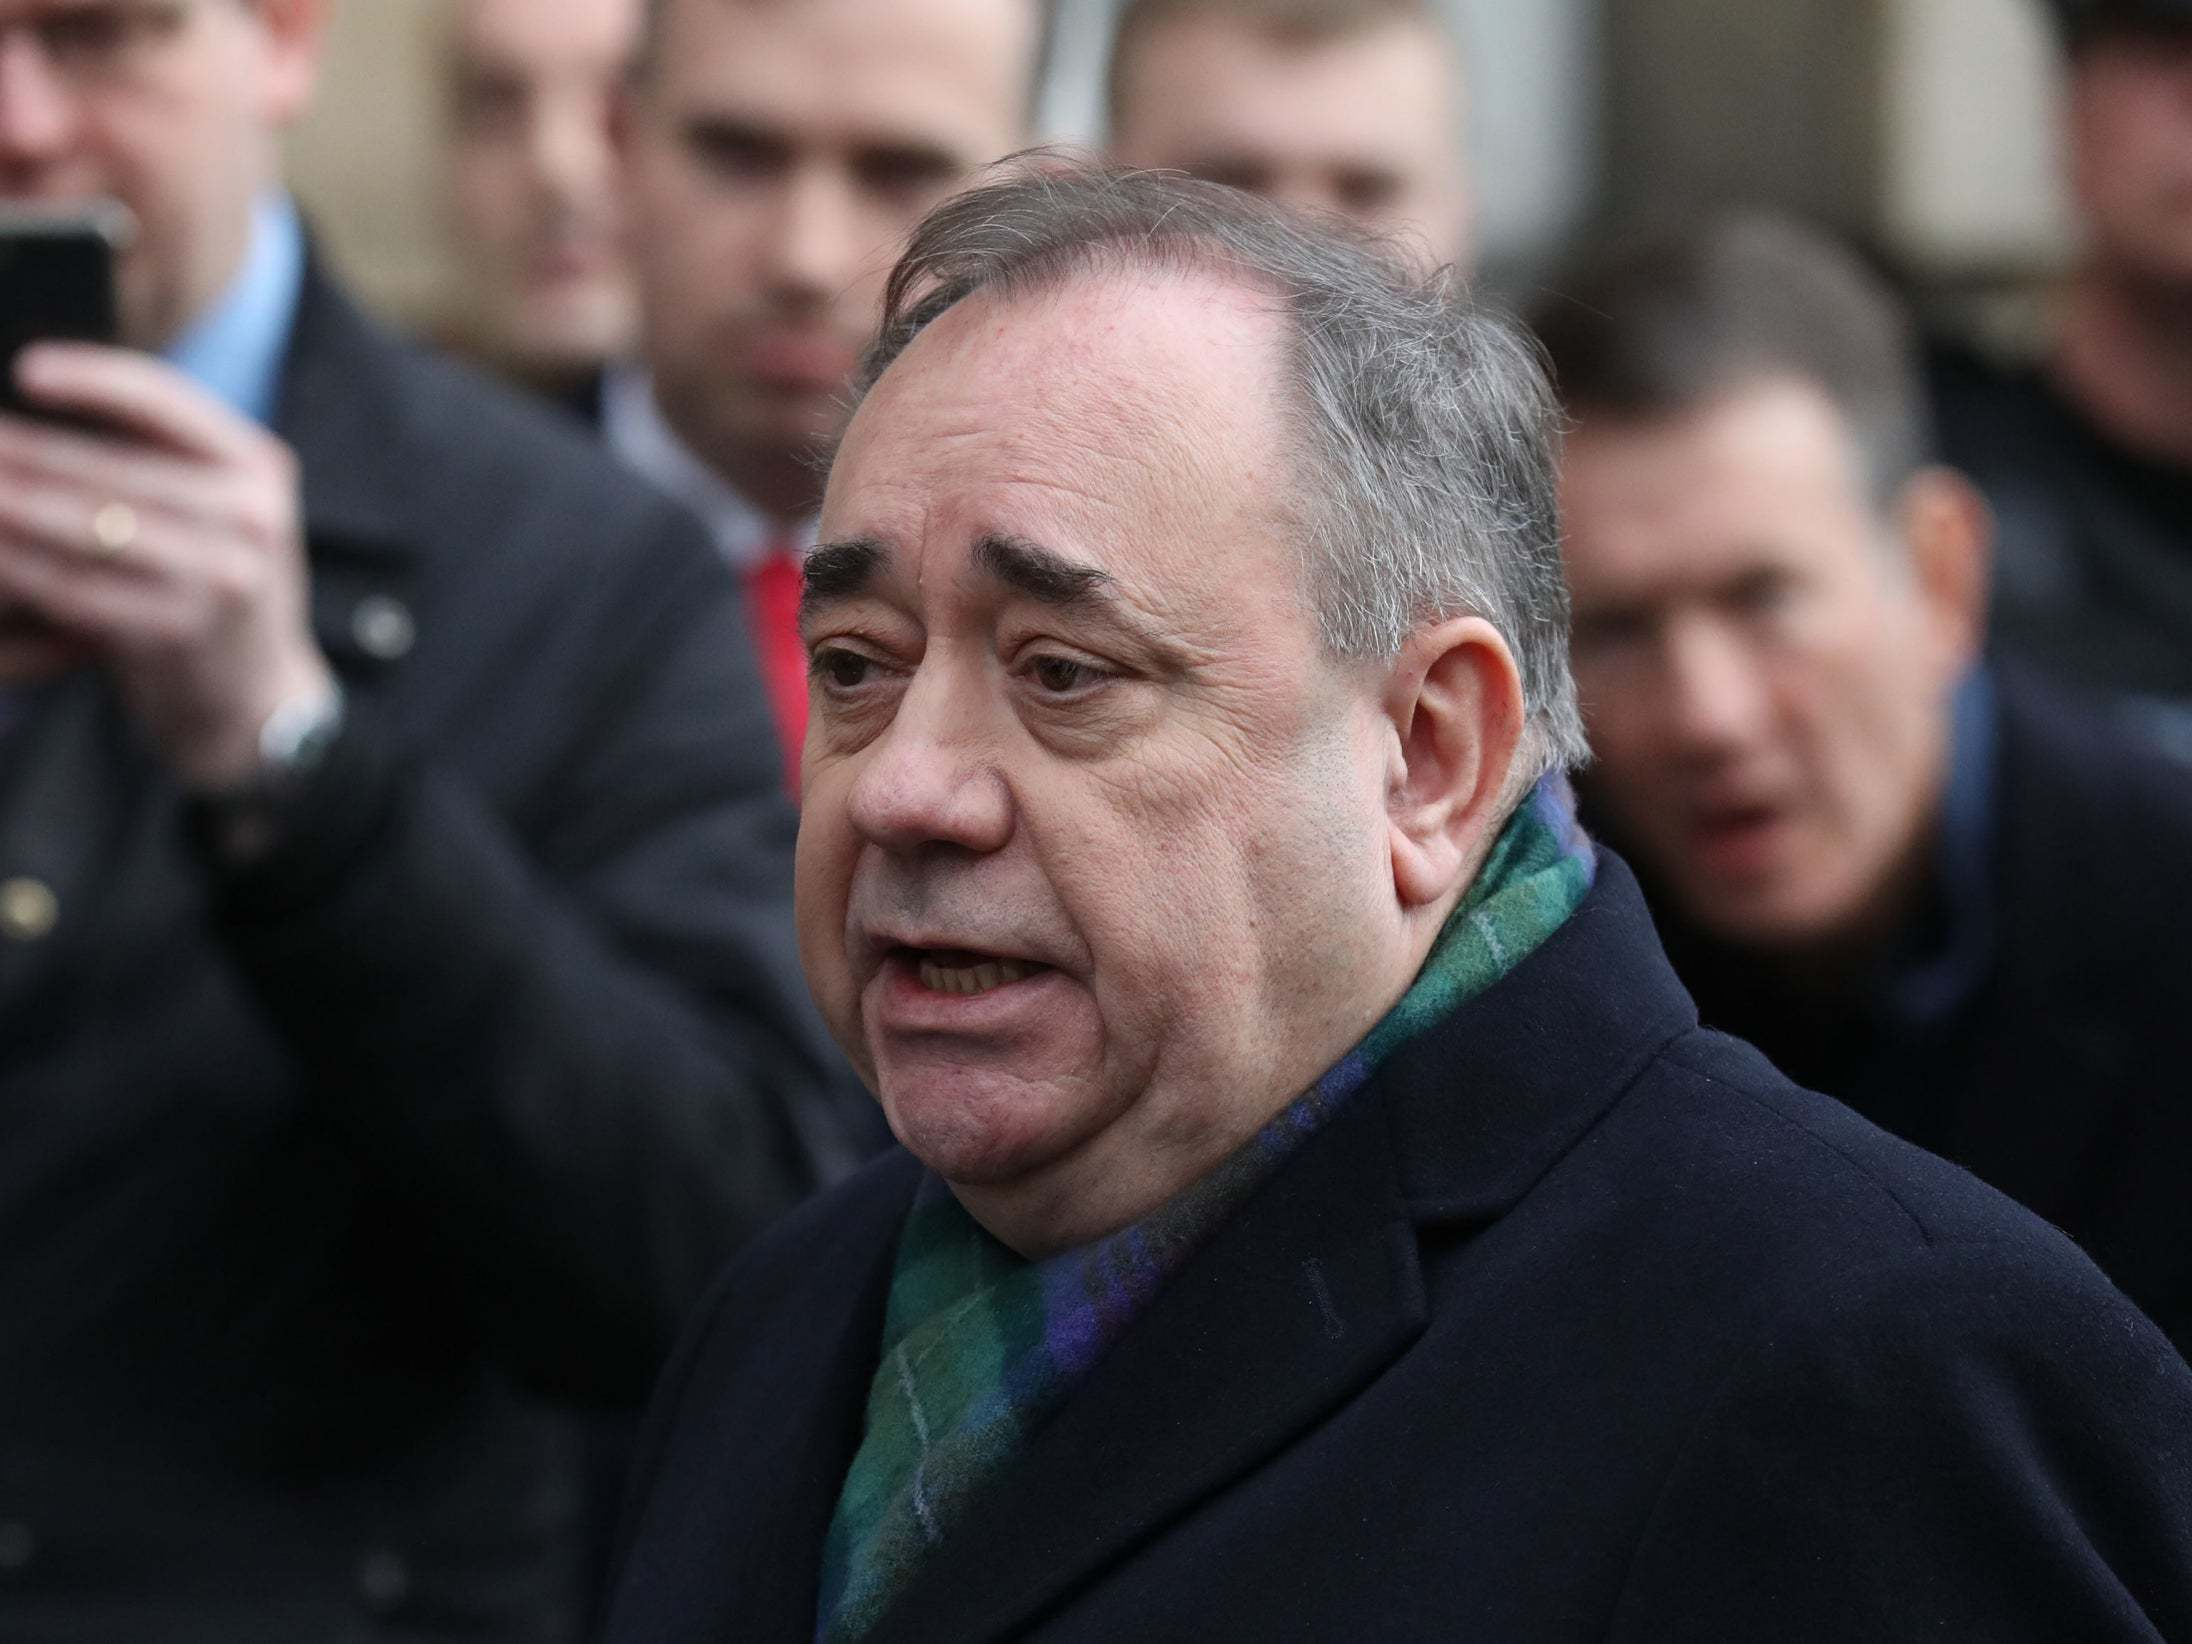 Alex Salmond denies attempting to rape woman in court appearance